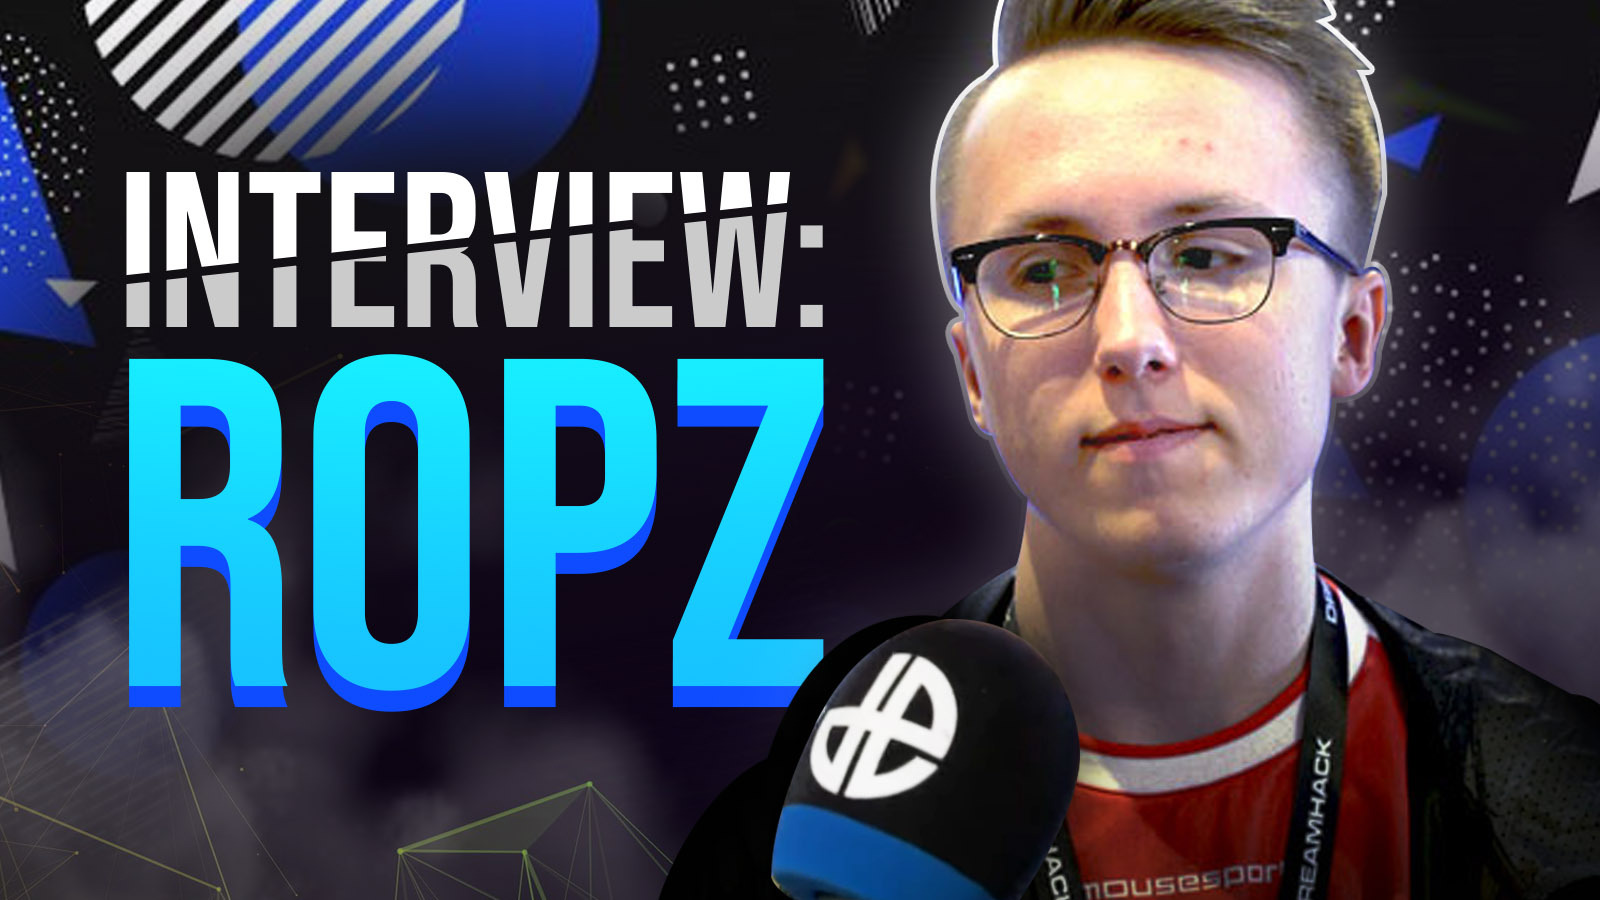 Ropz interview brought to you by Team Razer.